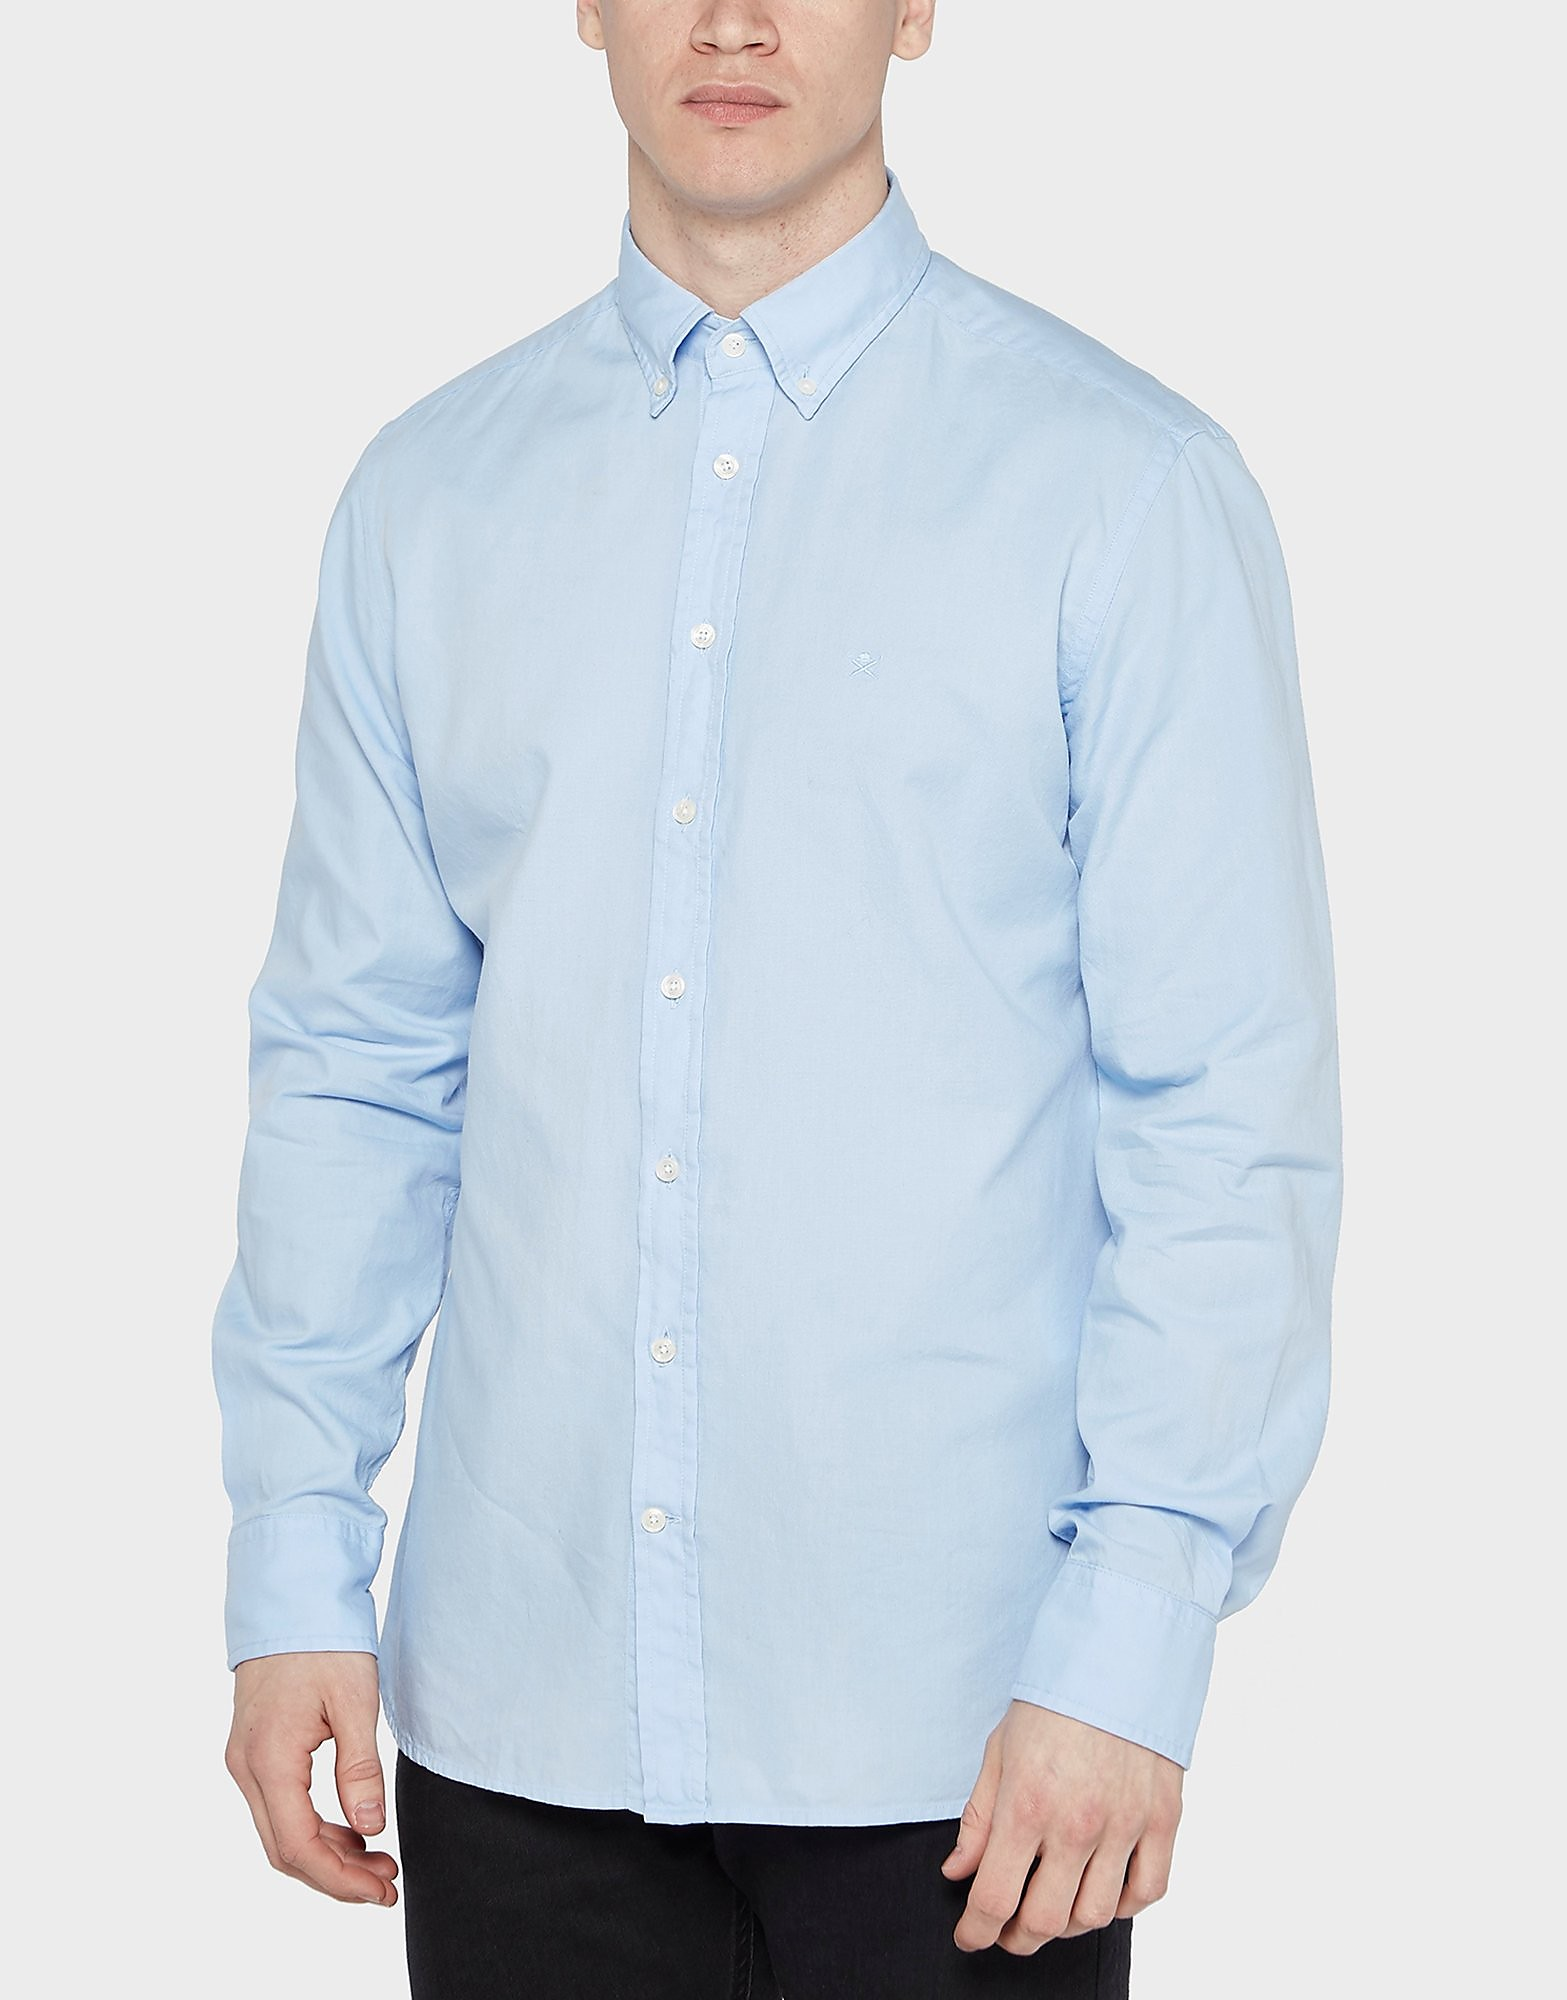 HACKETT Long Sleeve Oxford Shirt